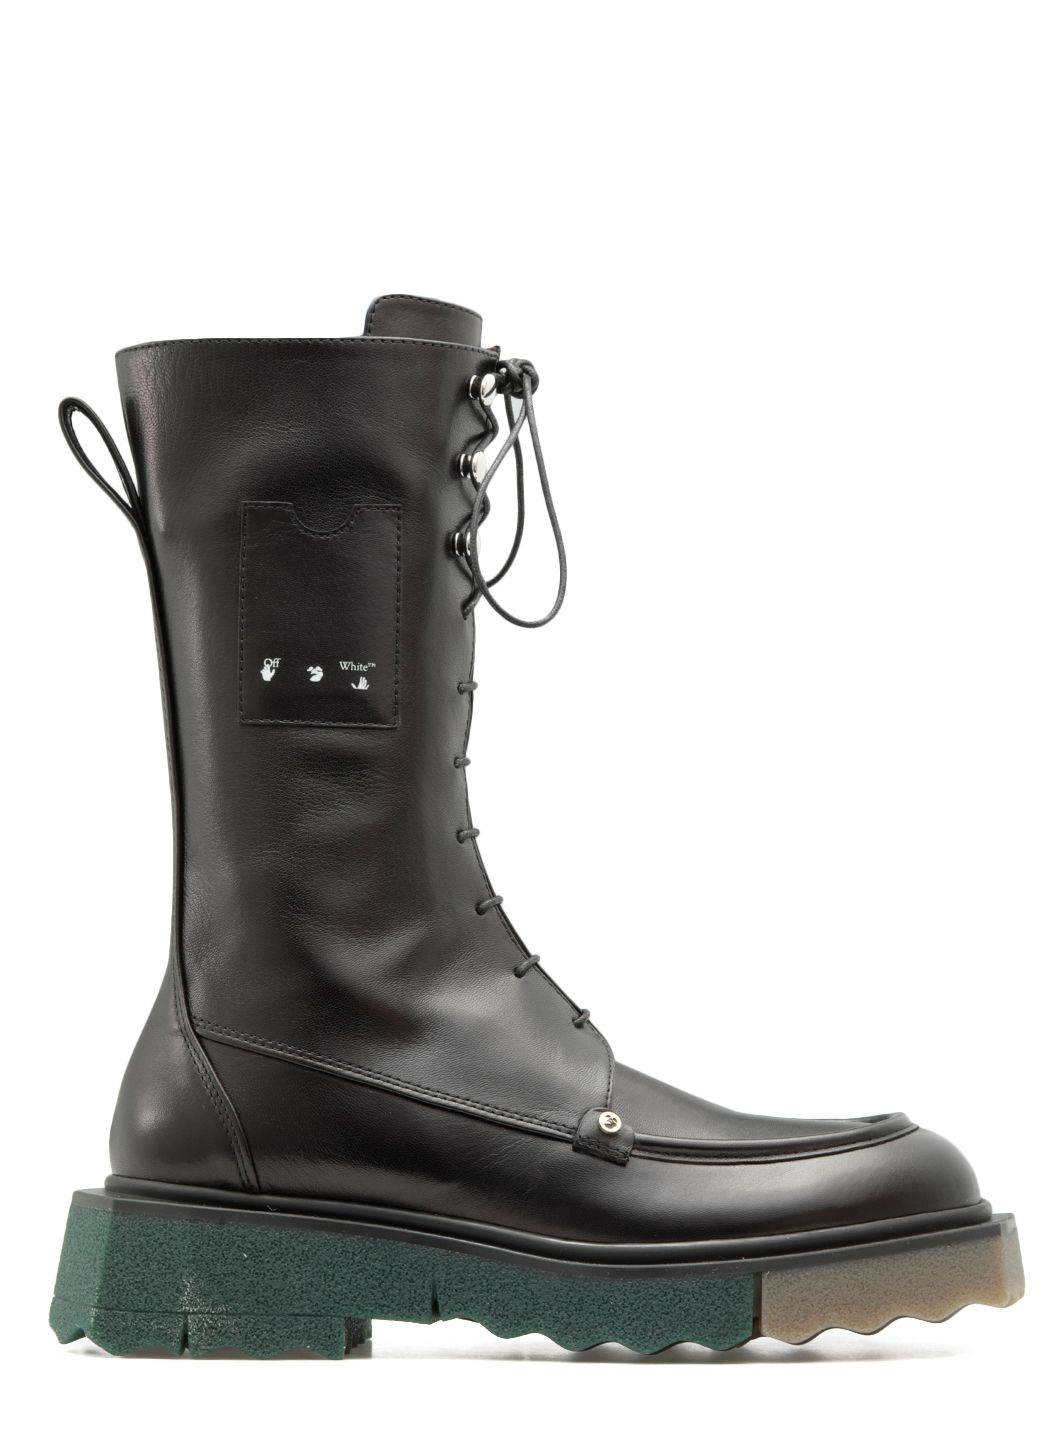 Leather high boot